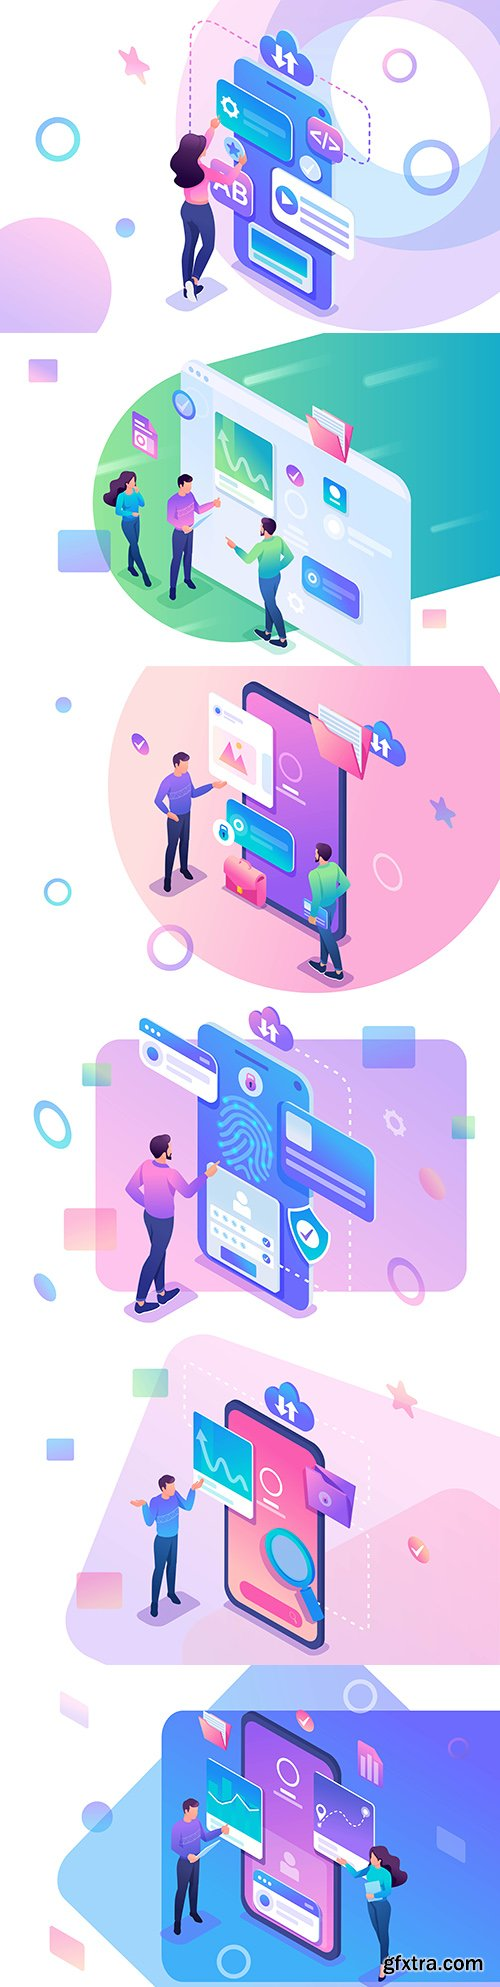 Internet technology and business people isometric design